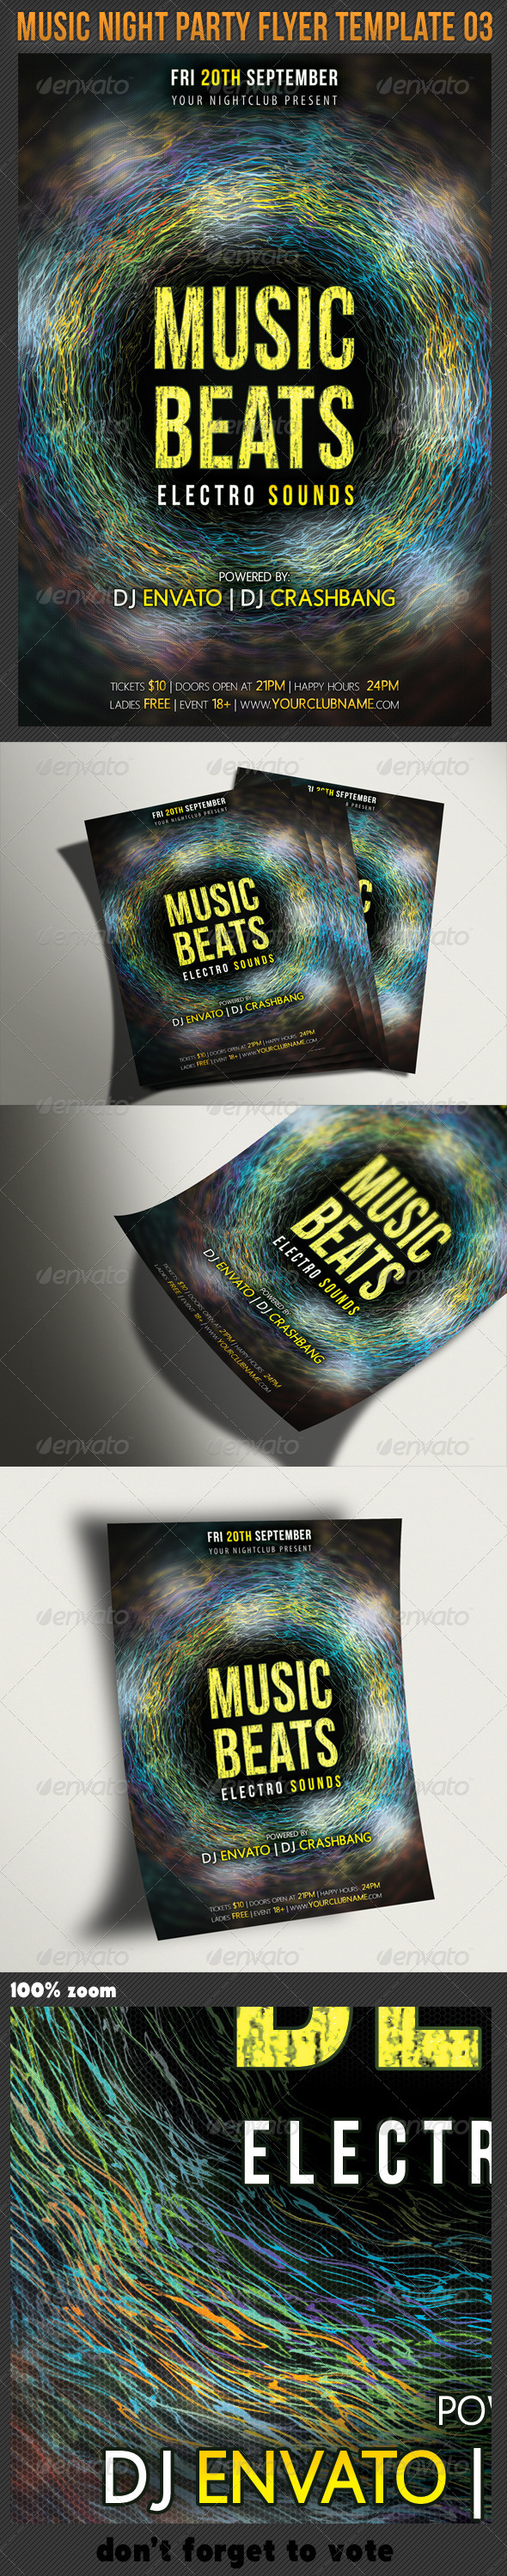 GraphicRiver Music Night Party Flyer Template 03 5541587